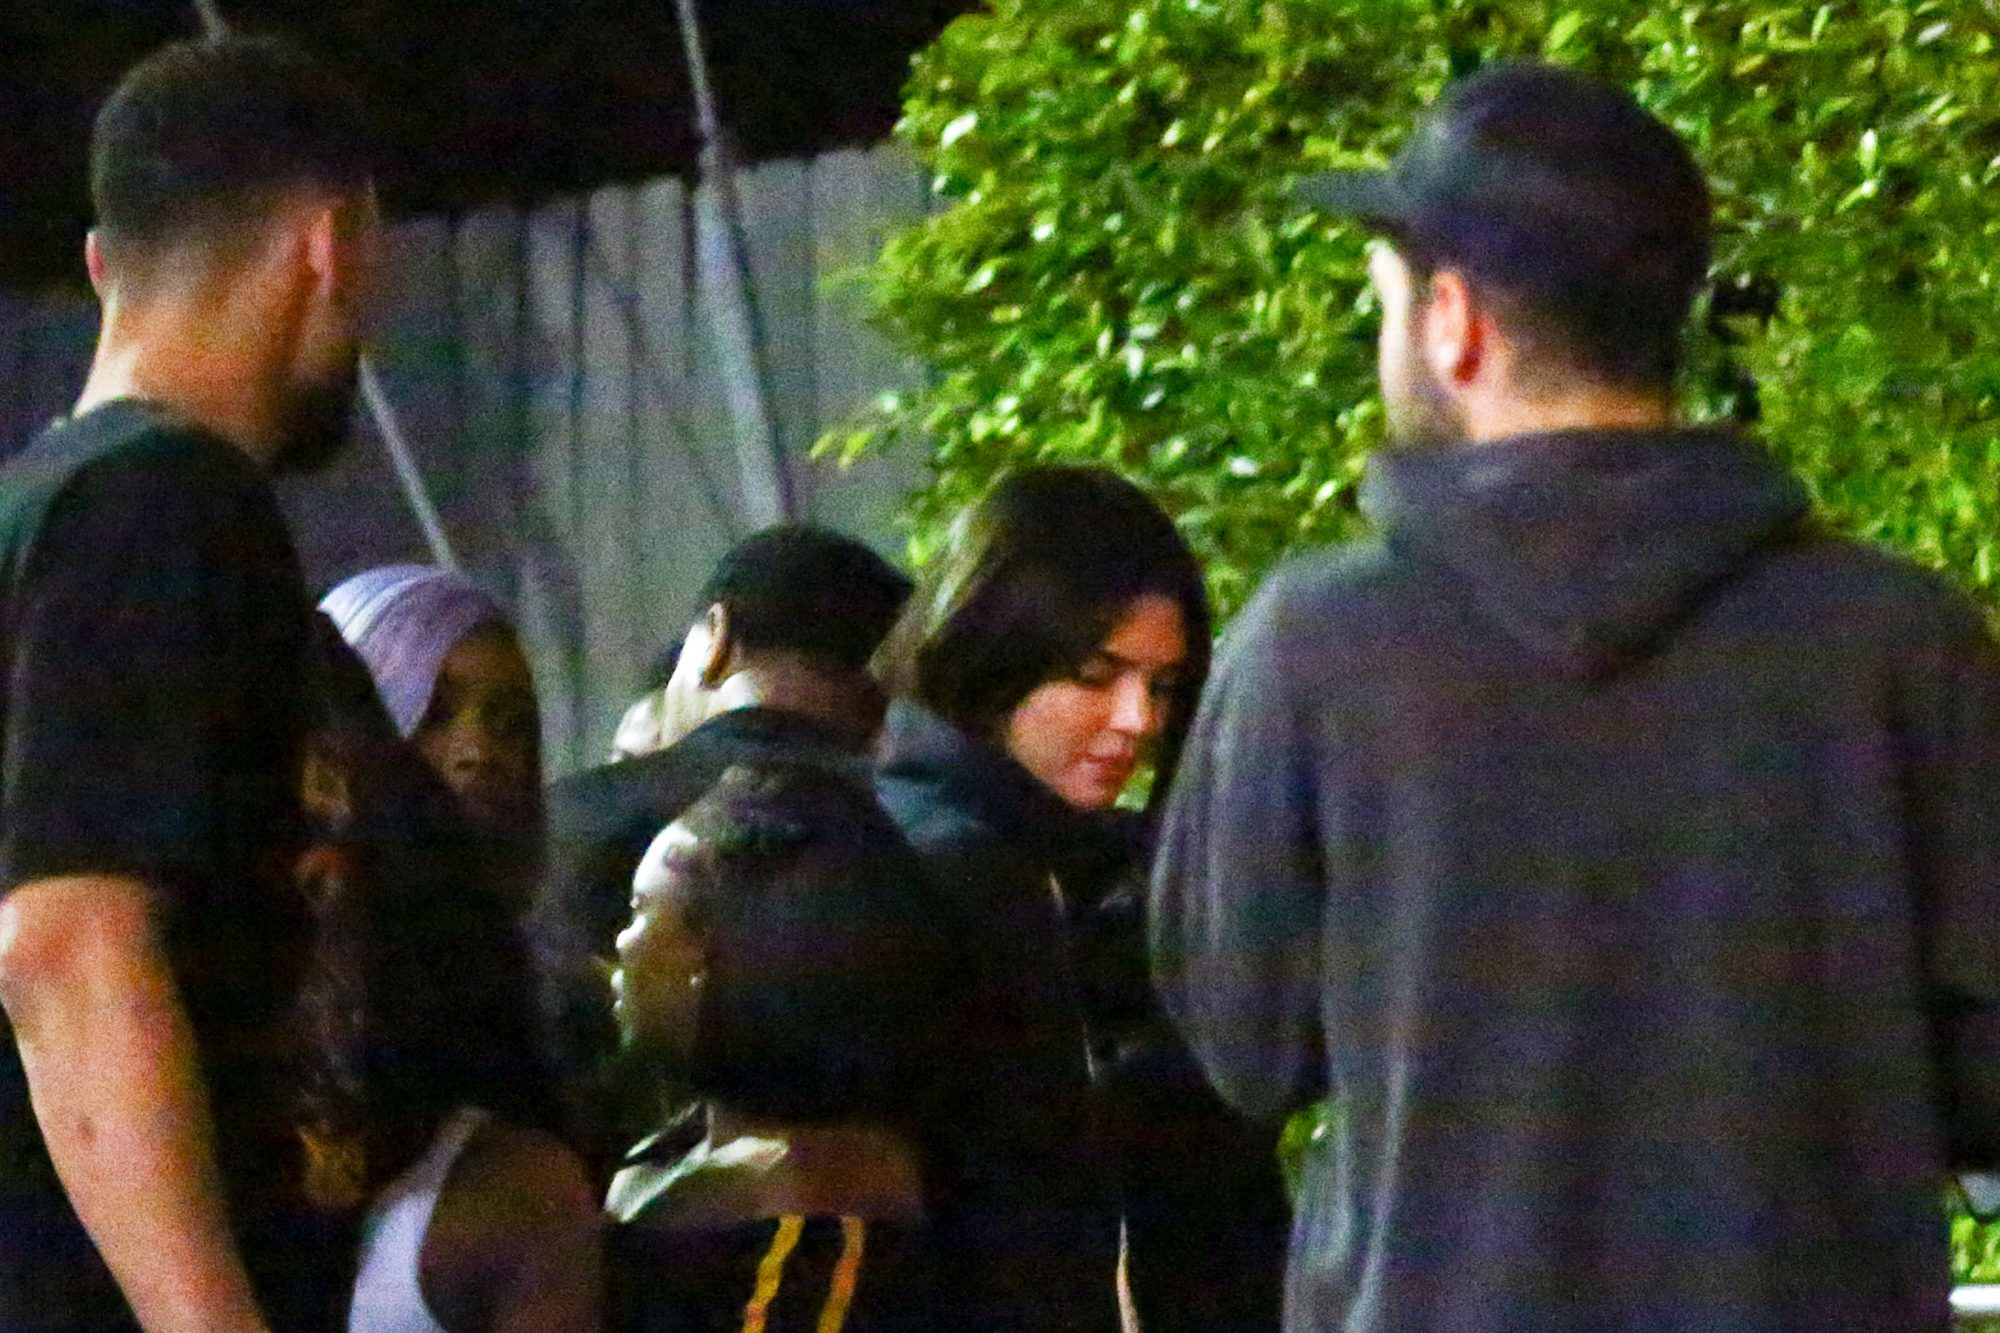 EXCLUSIVE: Kendall Jenner And Rumored Boyfriend Ben Simmons Are Both Spotted Arriving And Leaving Together At Hyde In Los Angeles